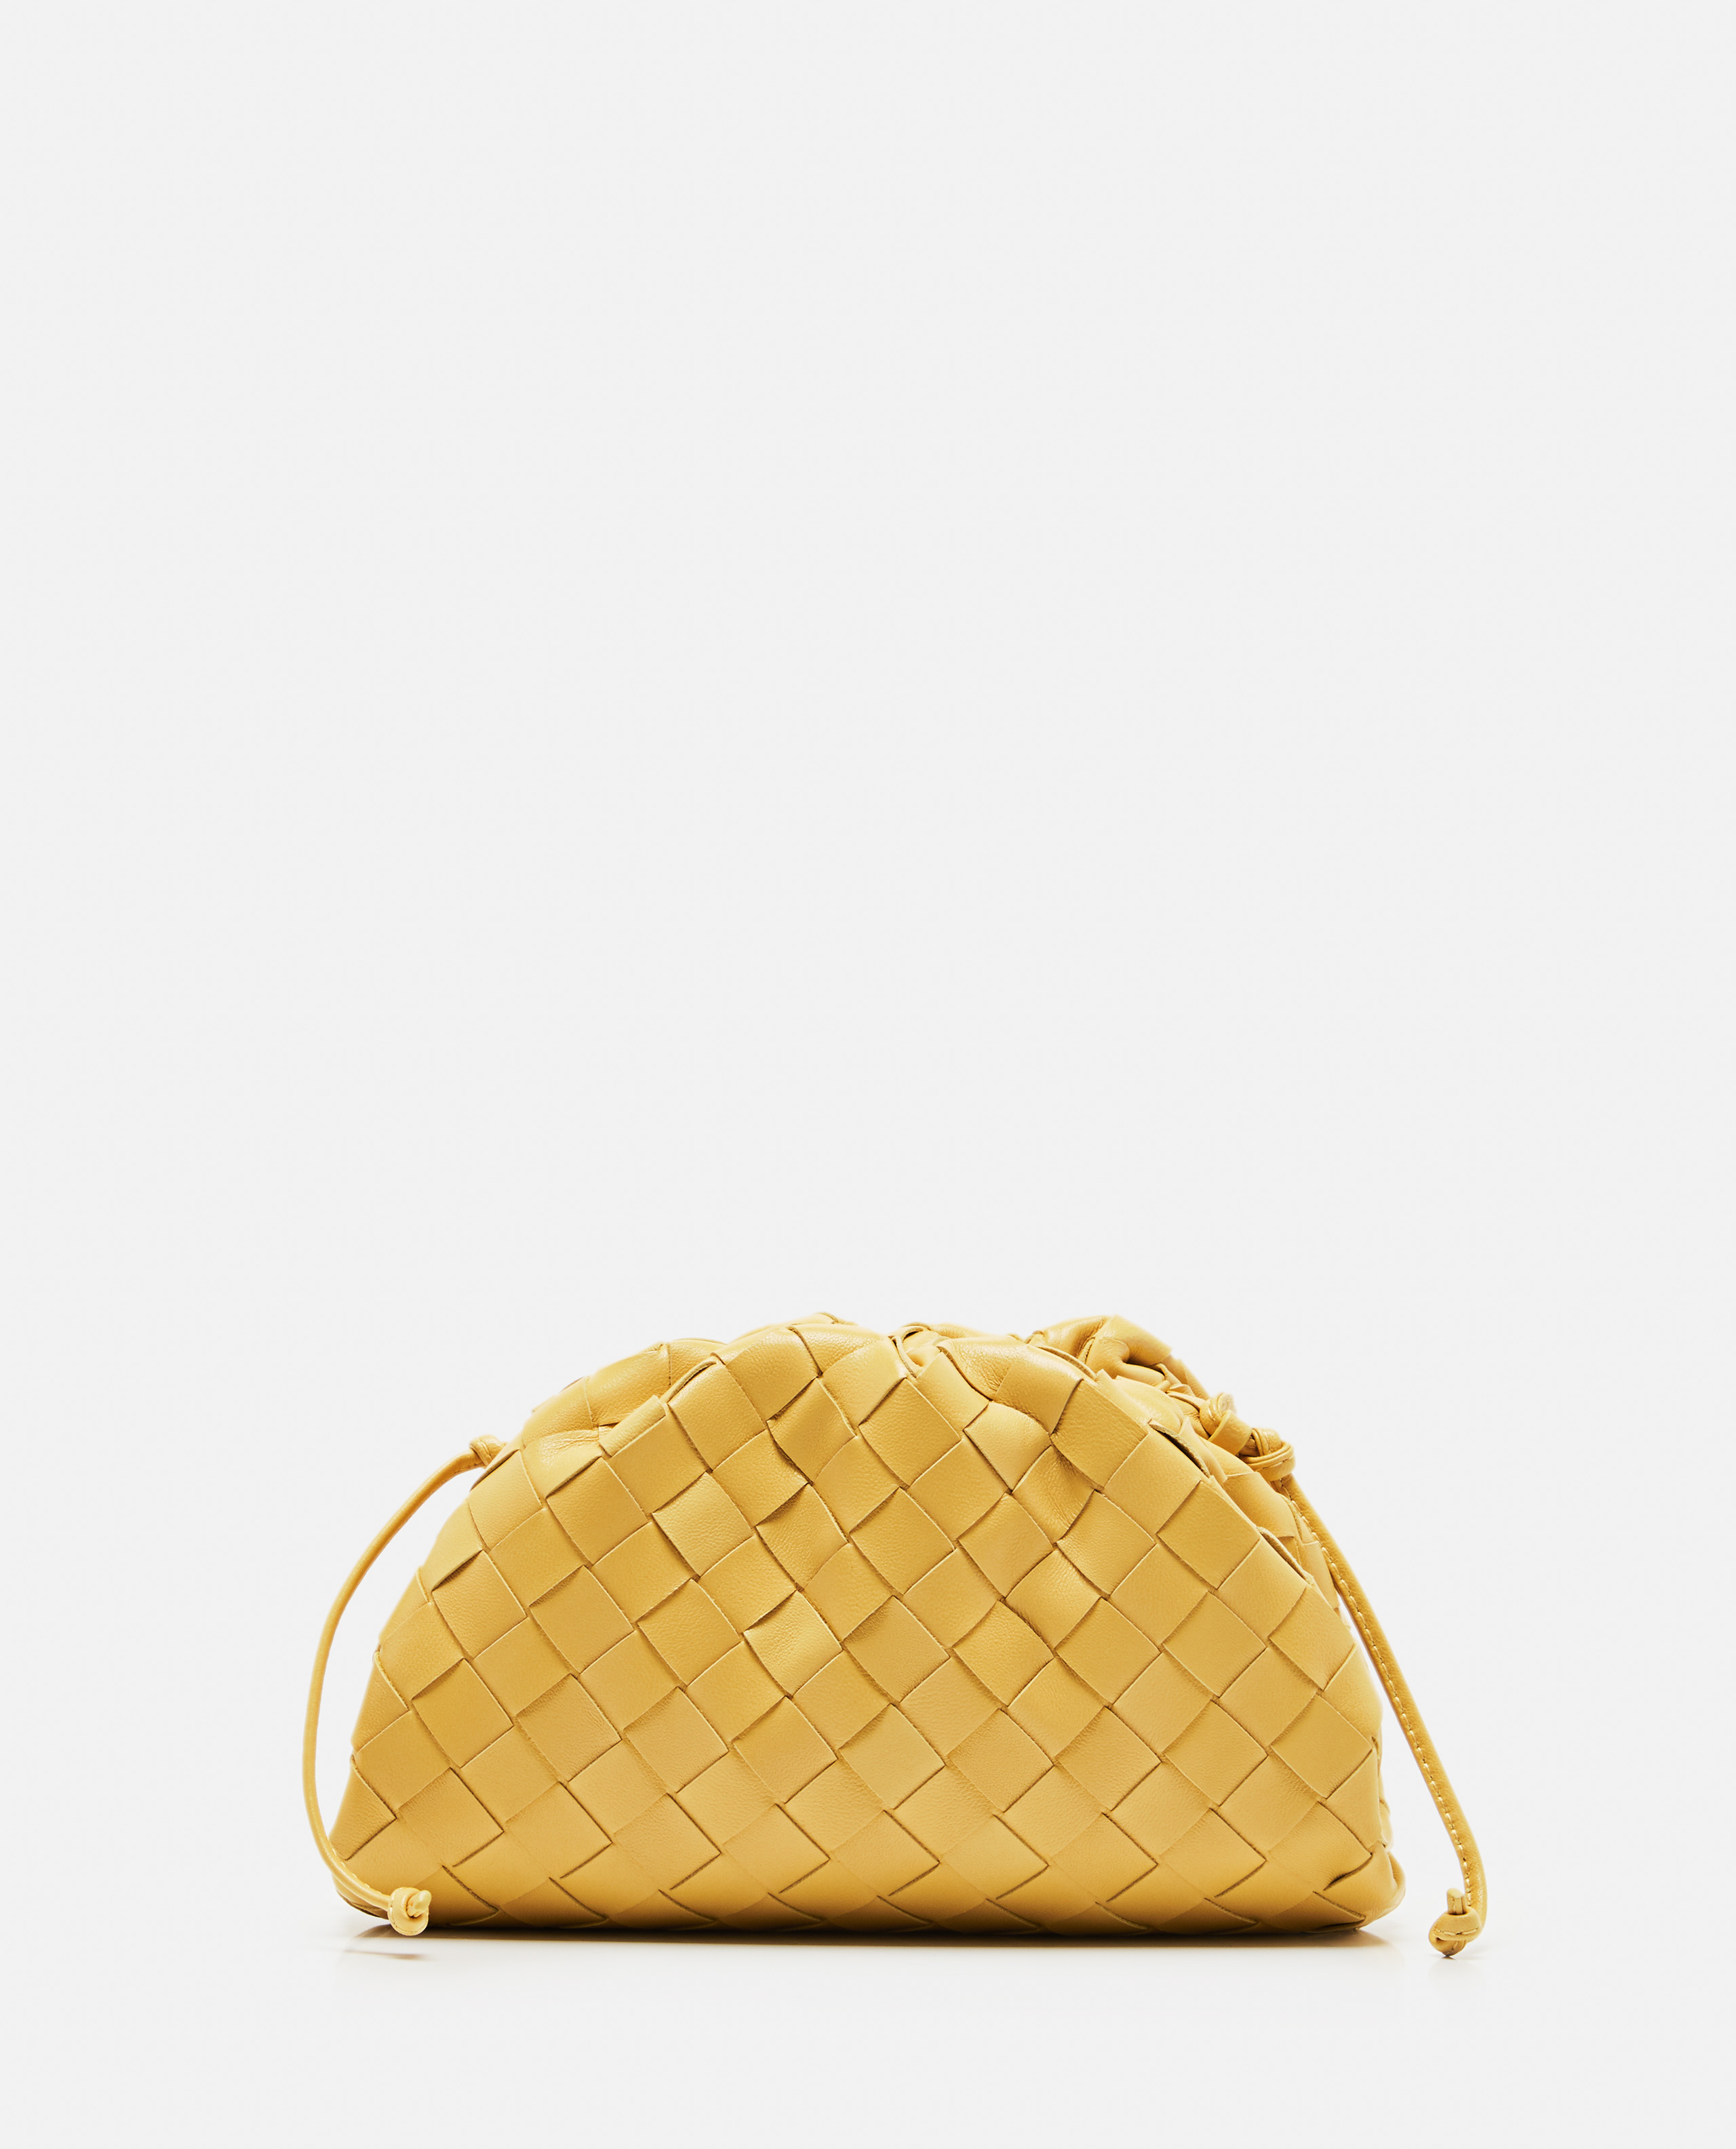 The Pouch 20 clutch in woven leather